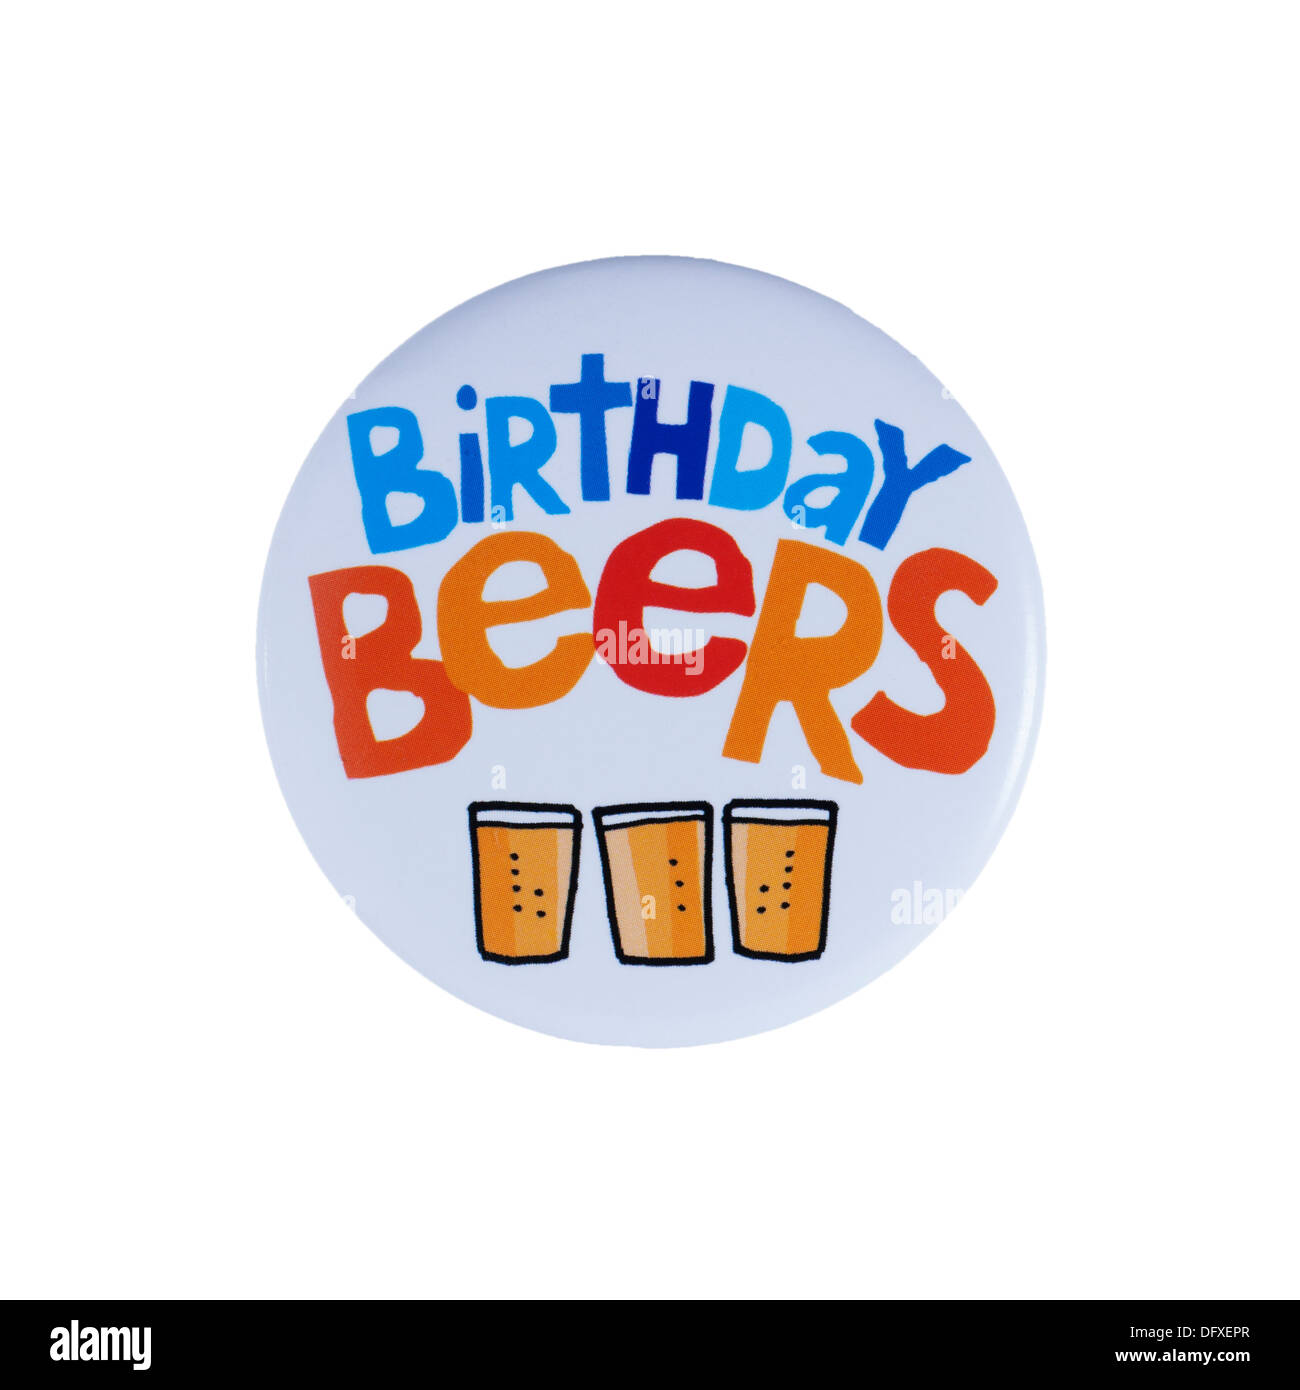 A Birthday badge on a white background - Stock Image